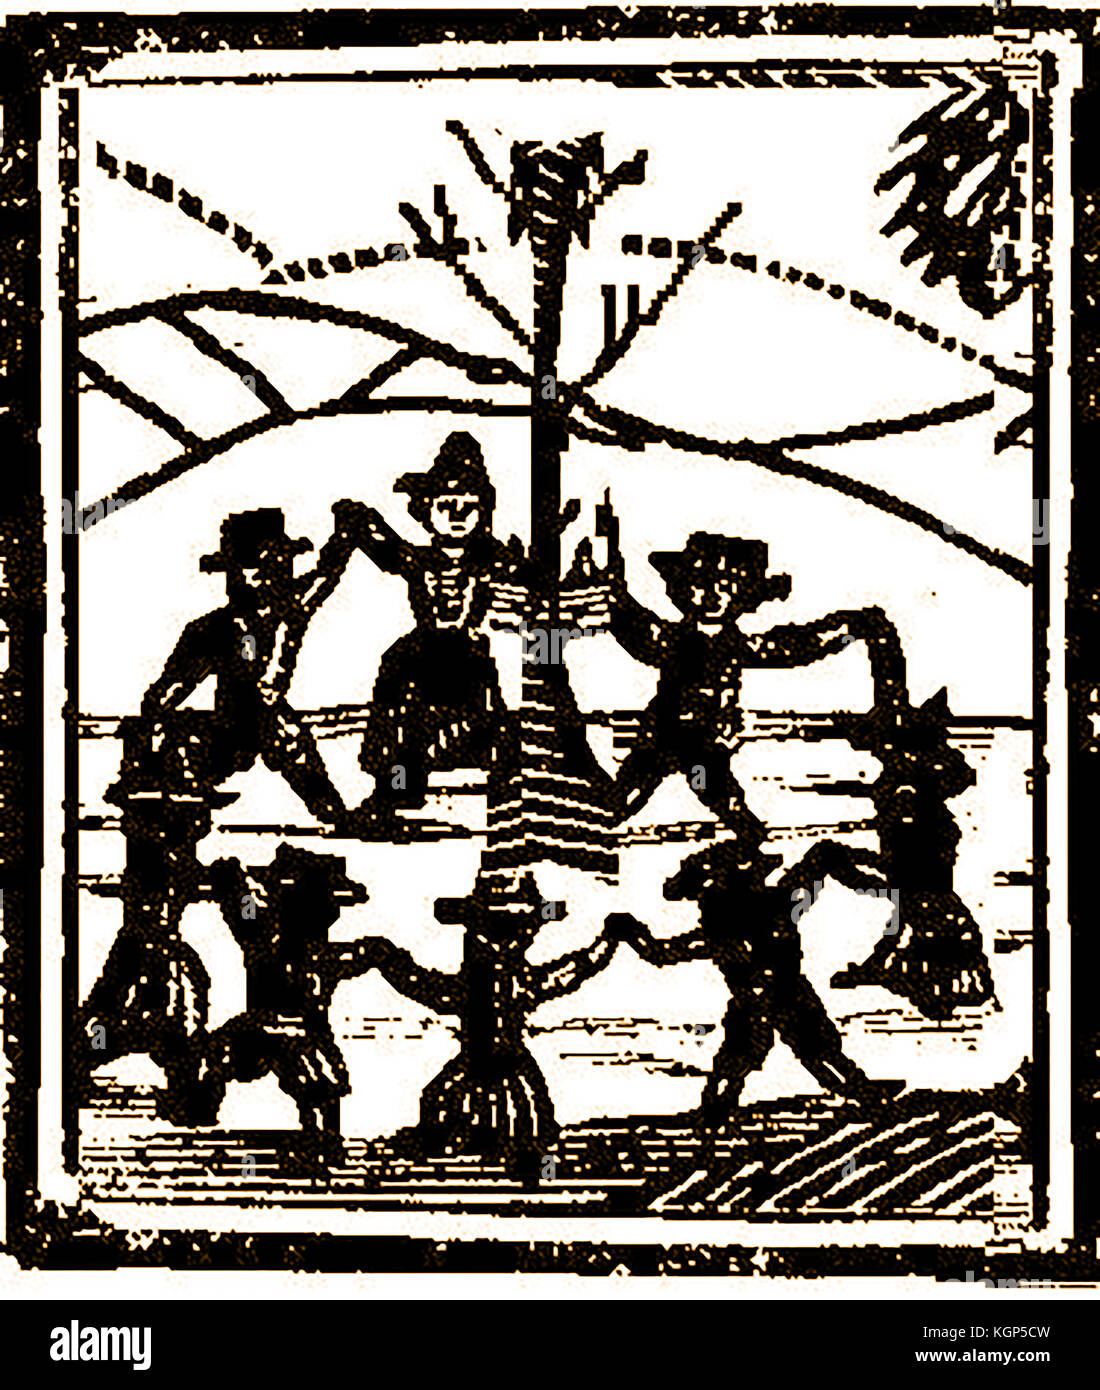 Coven of witches stock photos coven of witches stock images alamy an disputed 18th century woodcut showing either a witches coven or revellers dancing round a maypole biocorpaavc Images